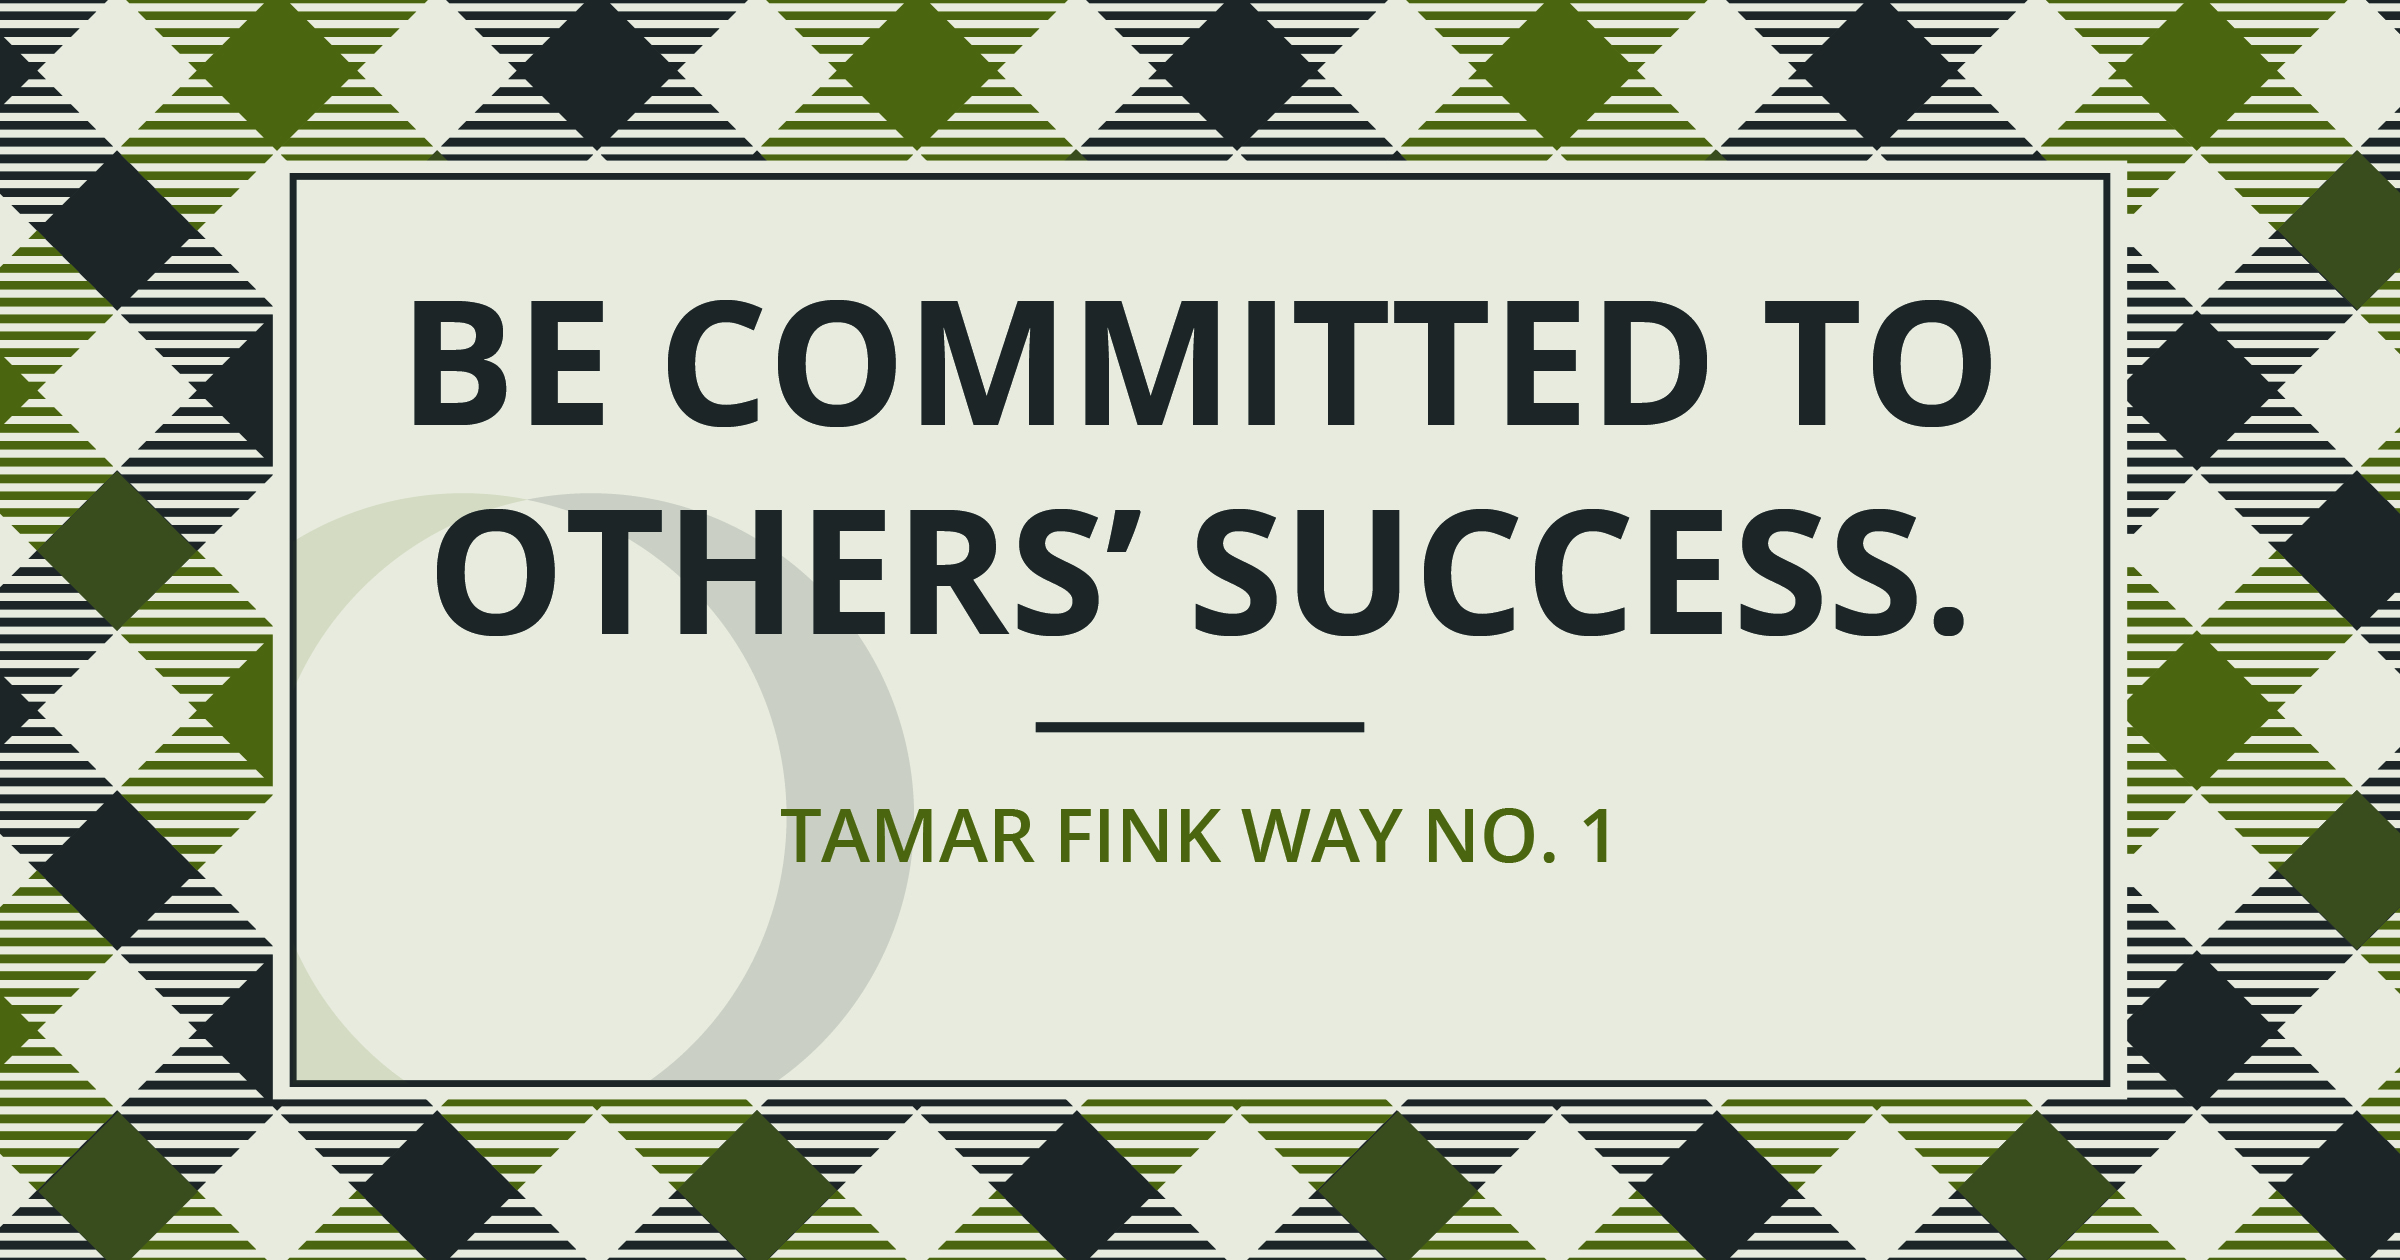 The Tamar Fink Way - #1